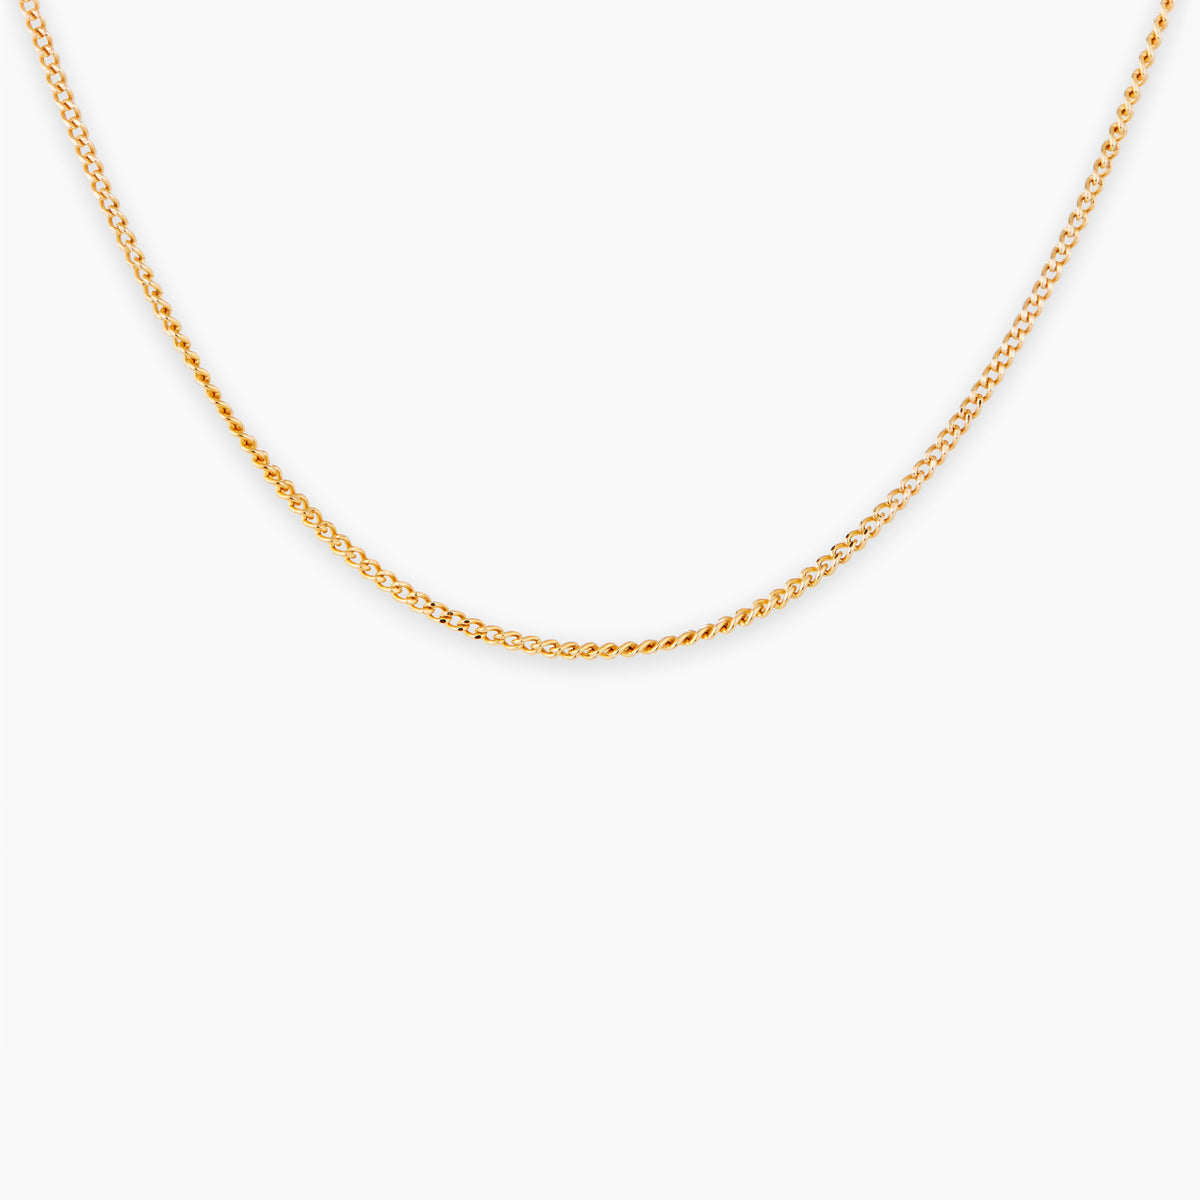 Gold Vermeil Curb Chain